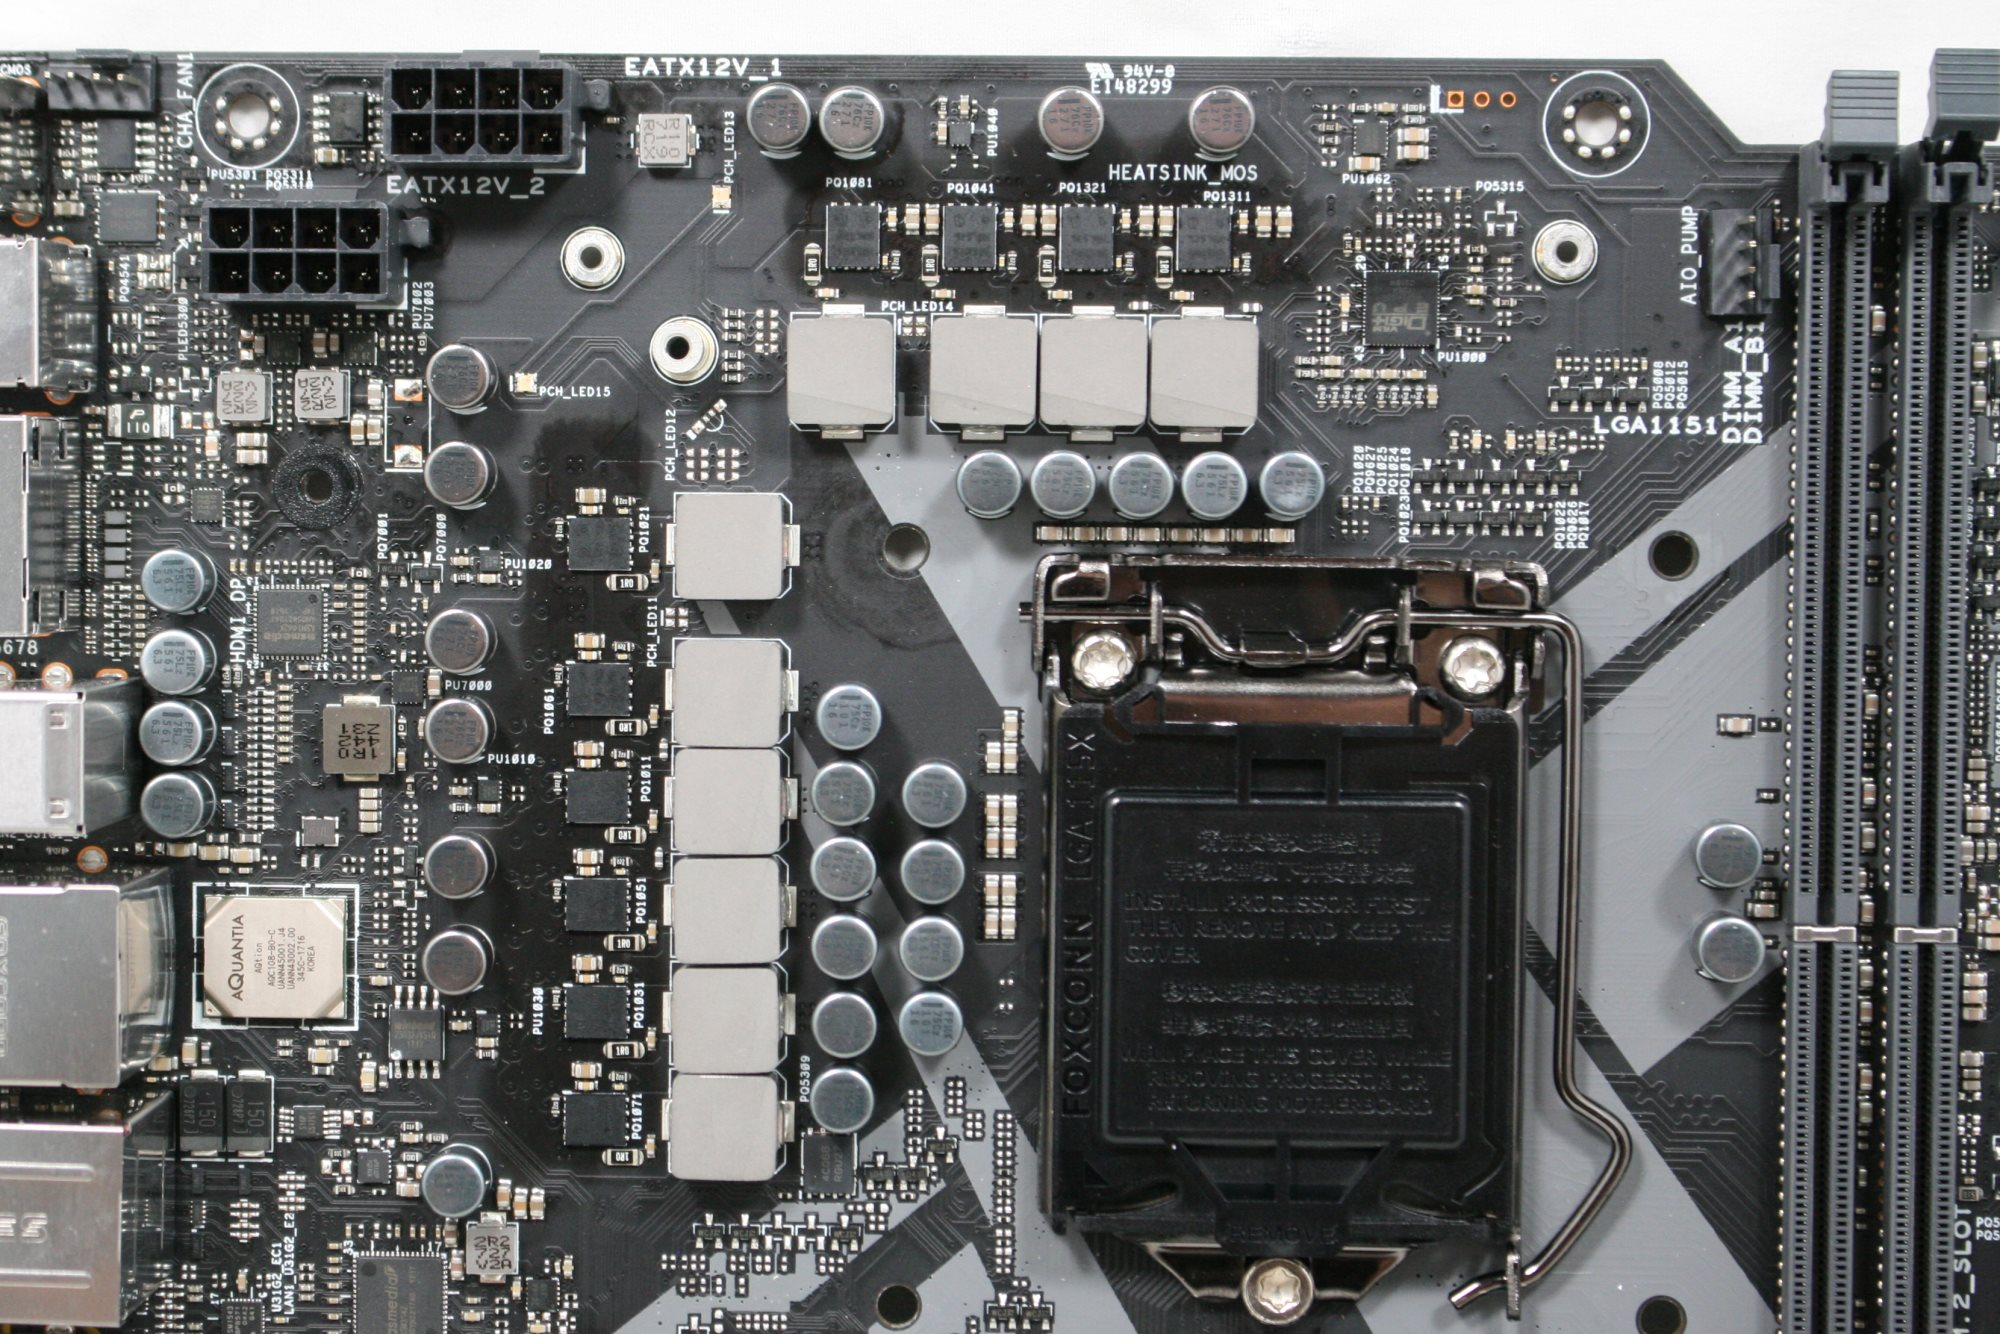 Visual Inspection The Asus Rog Maximus X Apex Review Marks For Mech Students Electronic Choke Circuit Simple Electronics Power Delivery Area In Is An 8 2 Mode Using Asuss 10k Capacitors As Well Microfine Alloy Chokes Driving These Are Asp14501